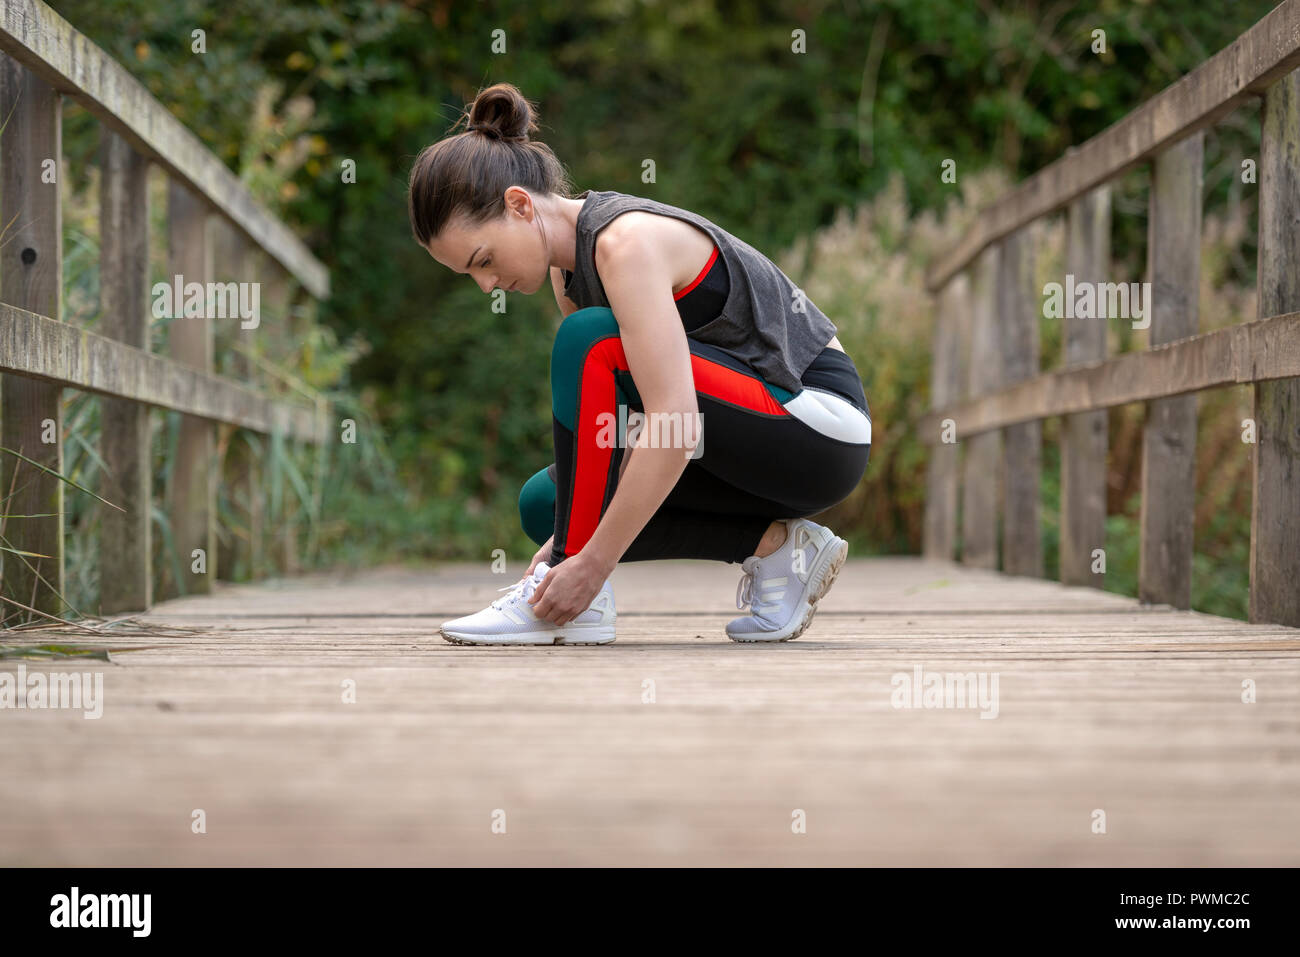 sporty woman tying up her trainers before exercise and running - Stock Image